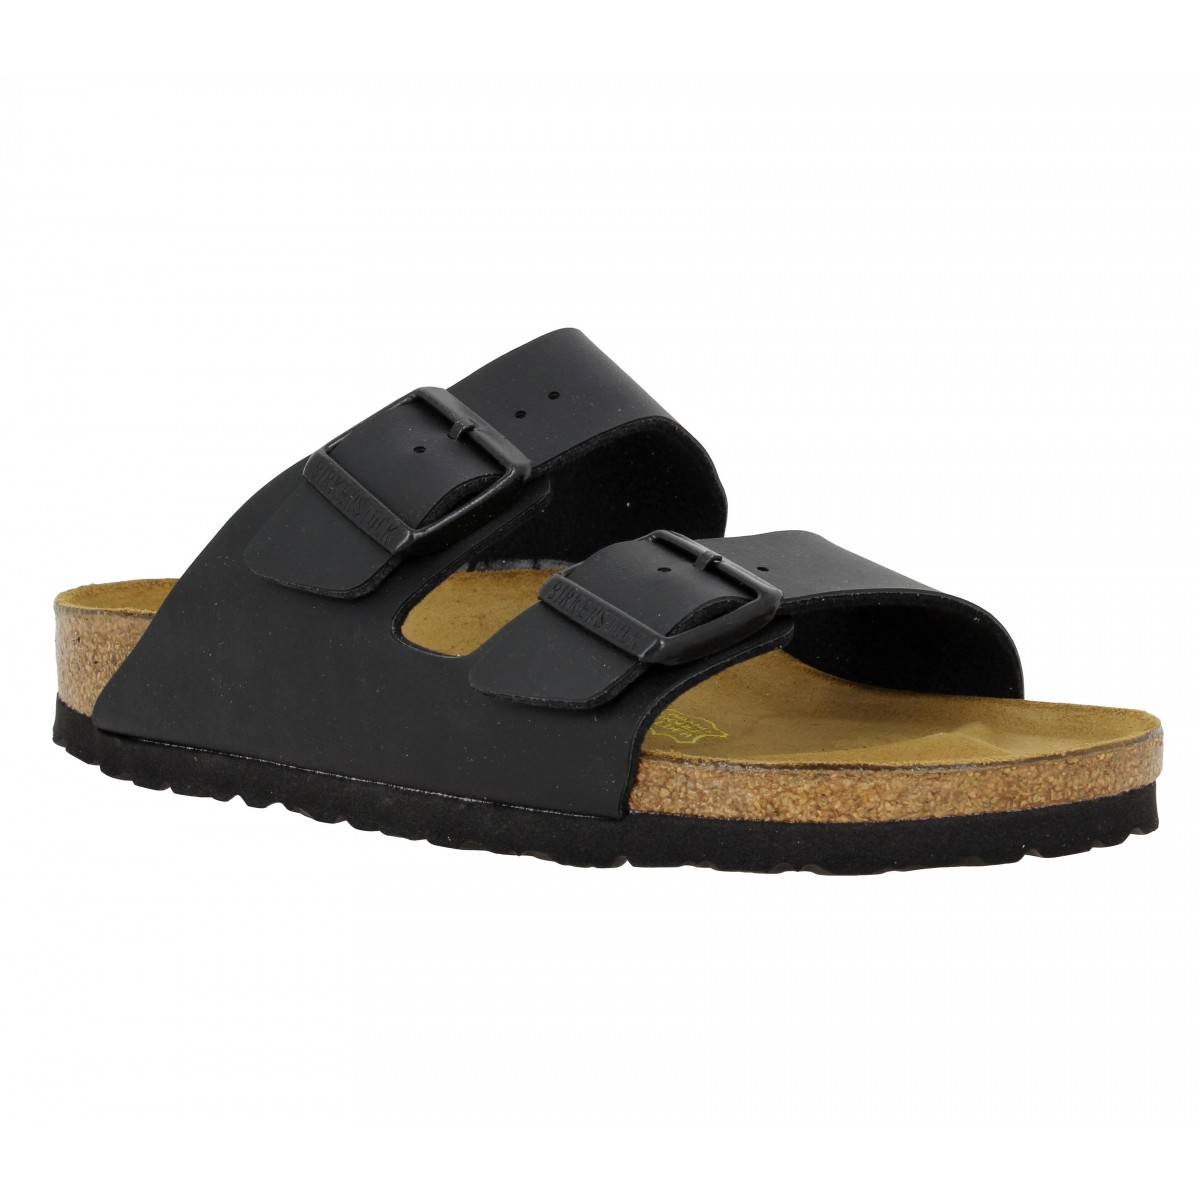 birkenstock chaussures pour homme vente en ligne. Black Bedroom Furniture Sets. Home Design Ideas